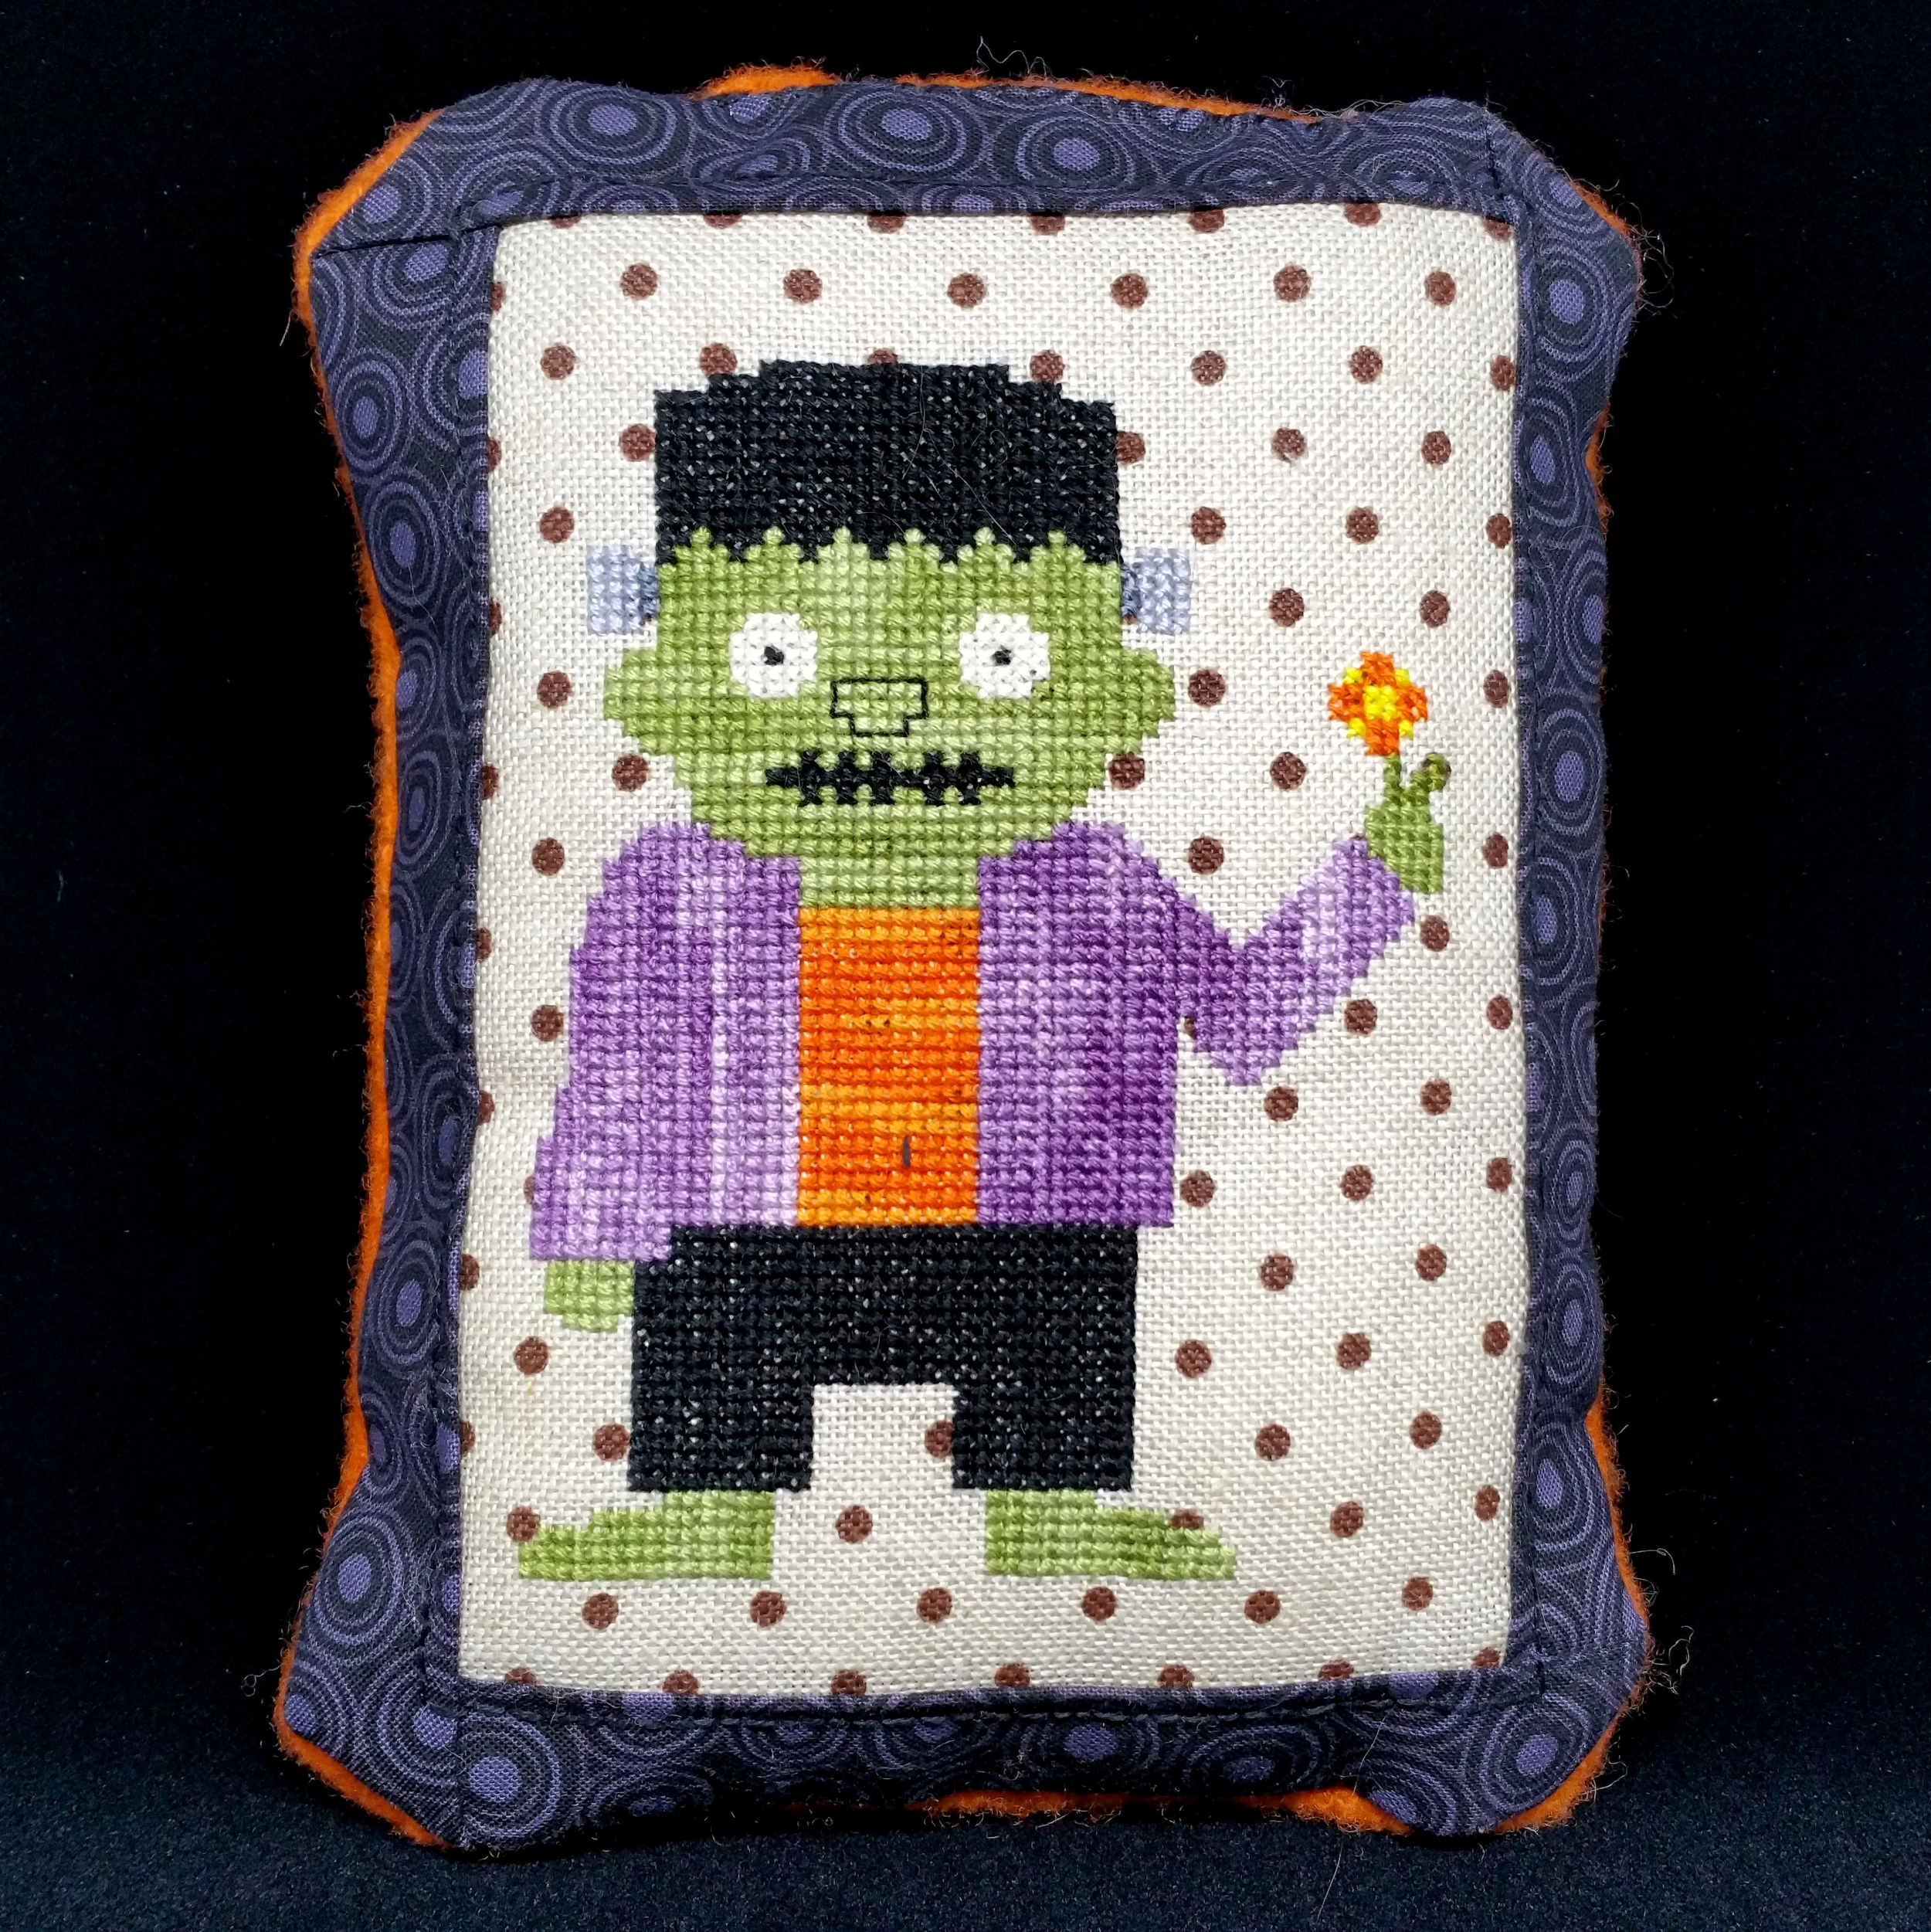 StitchyBox's Monster Boo, chart copyright DailyCrossStitch.com, stitched by Nadia